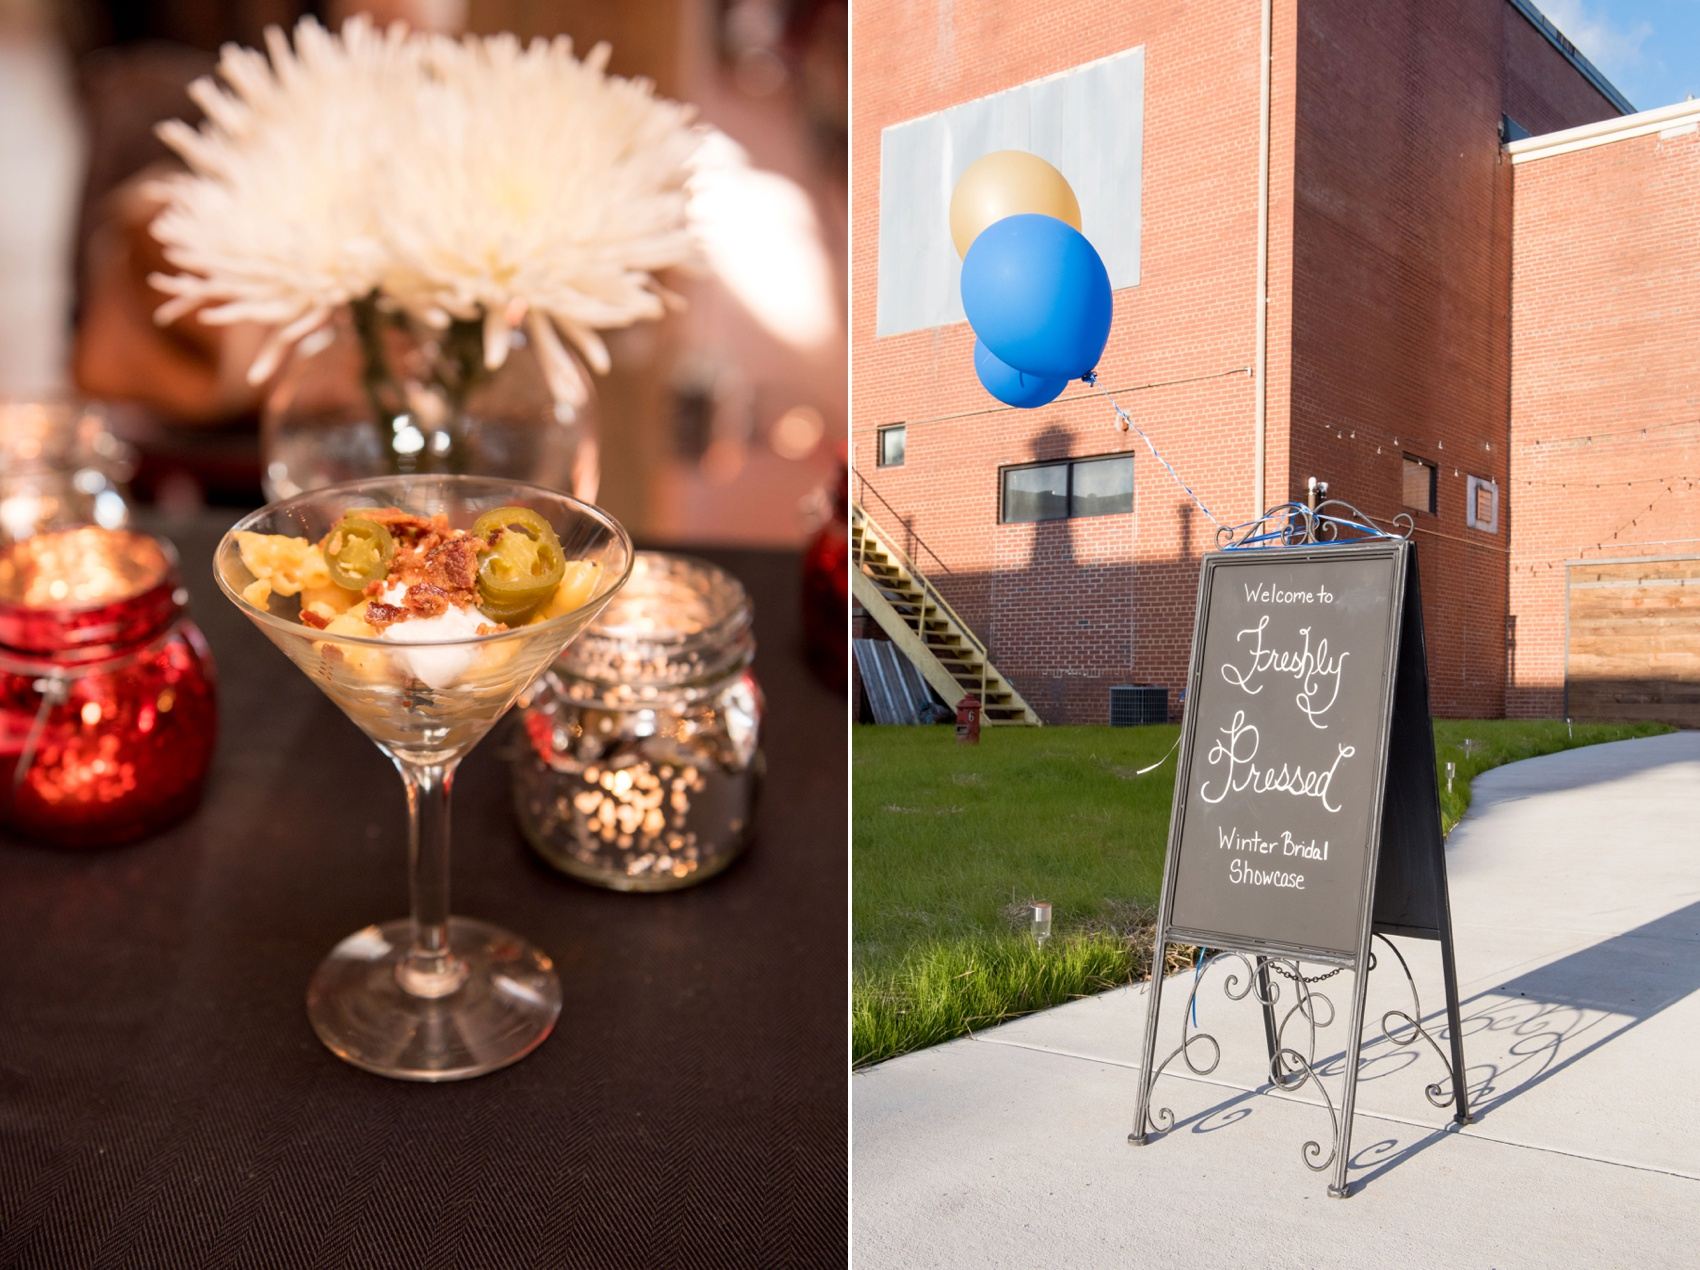 The Cloth Mill North Carolina wedding vendor showcase. Raleigh, Durham and Hillsborough vendors at a rustic, modern location. Signage and macaroni and cheese martini glass by Farmer's Table Group.